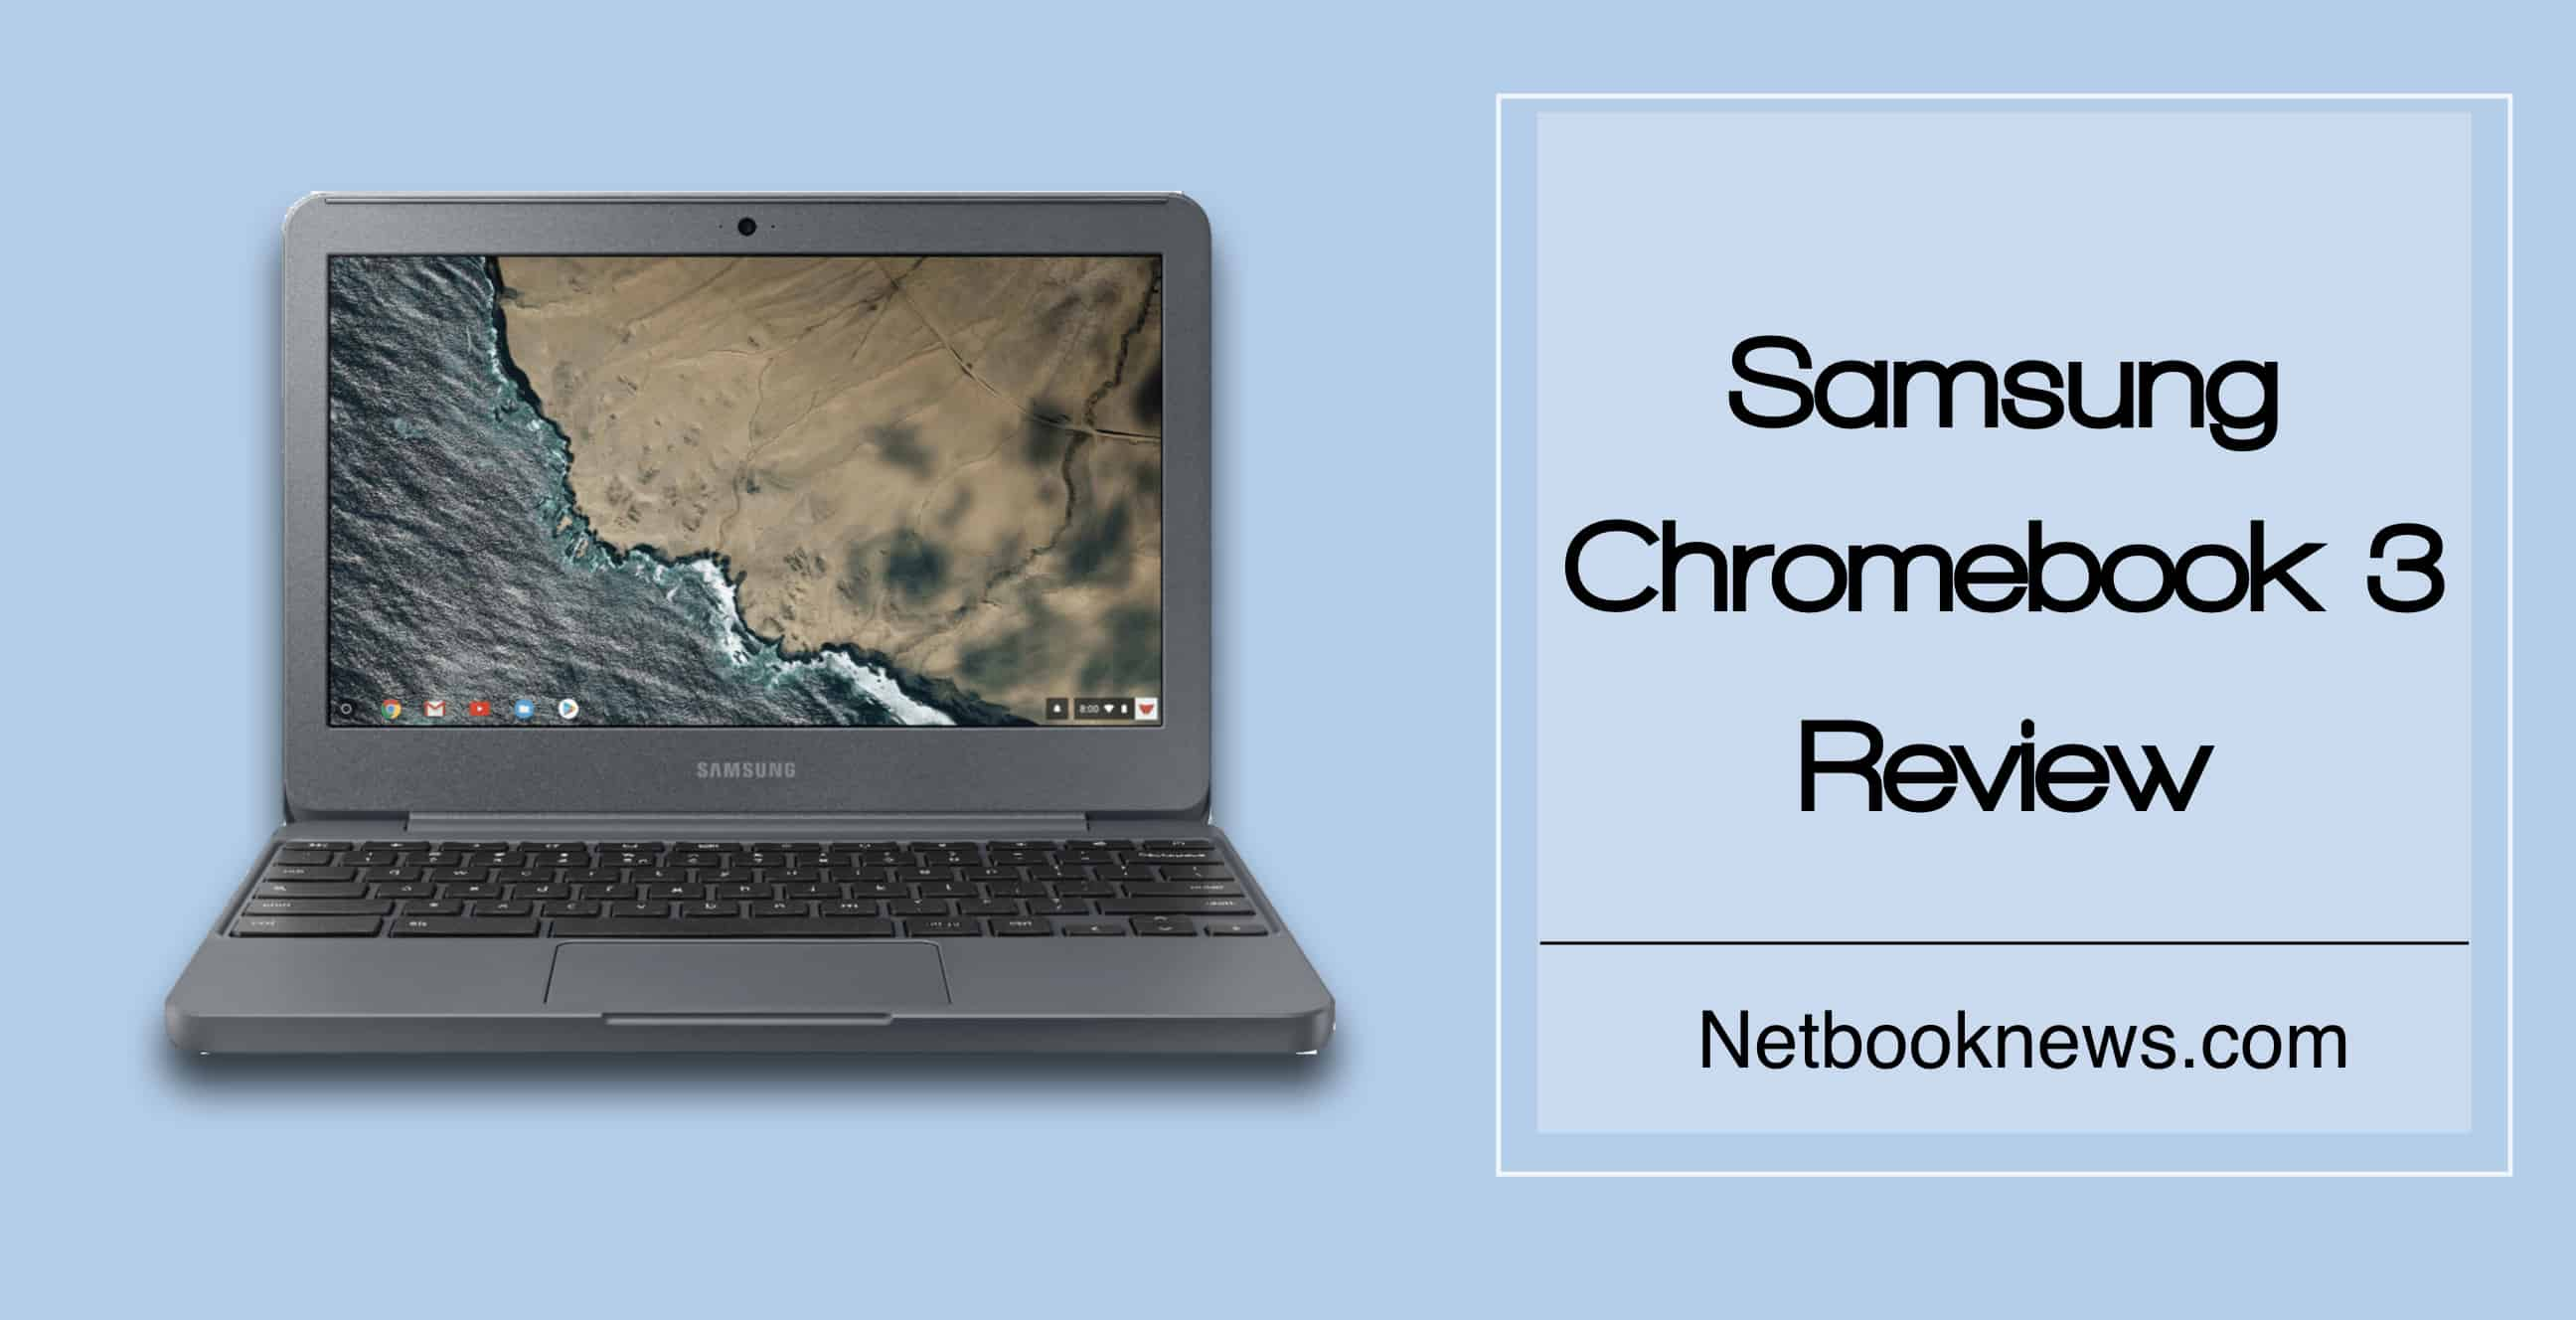 Samsung Chromebook 3 2019 Review (XE500C13-K06US)